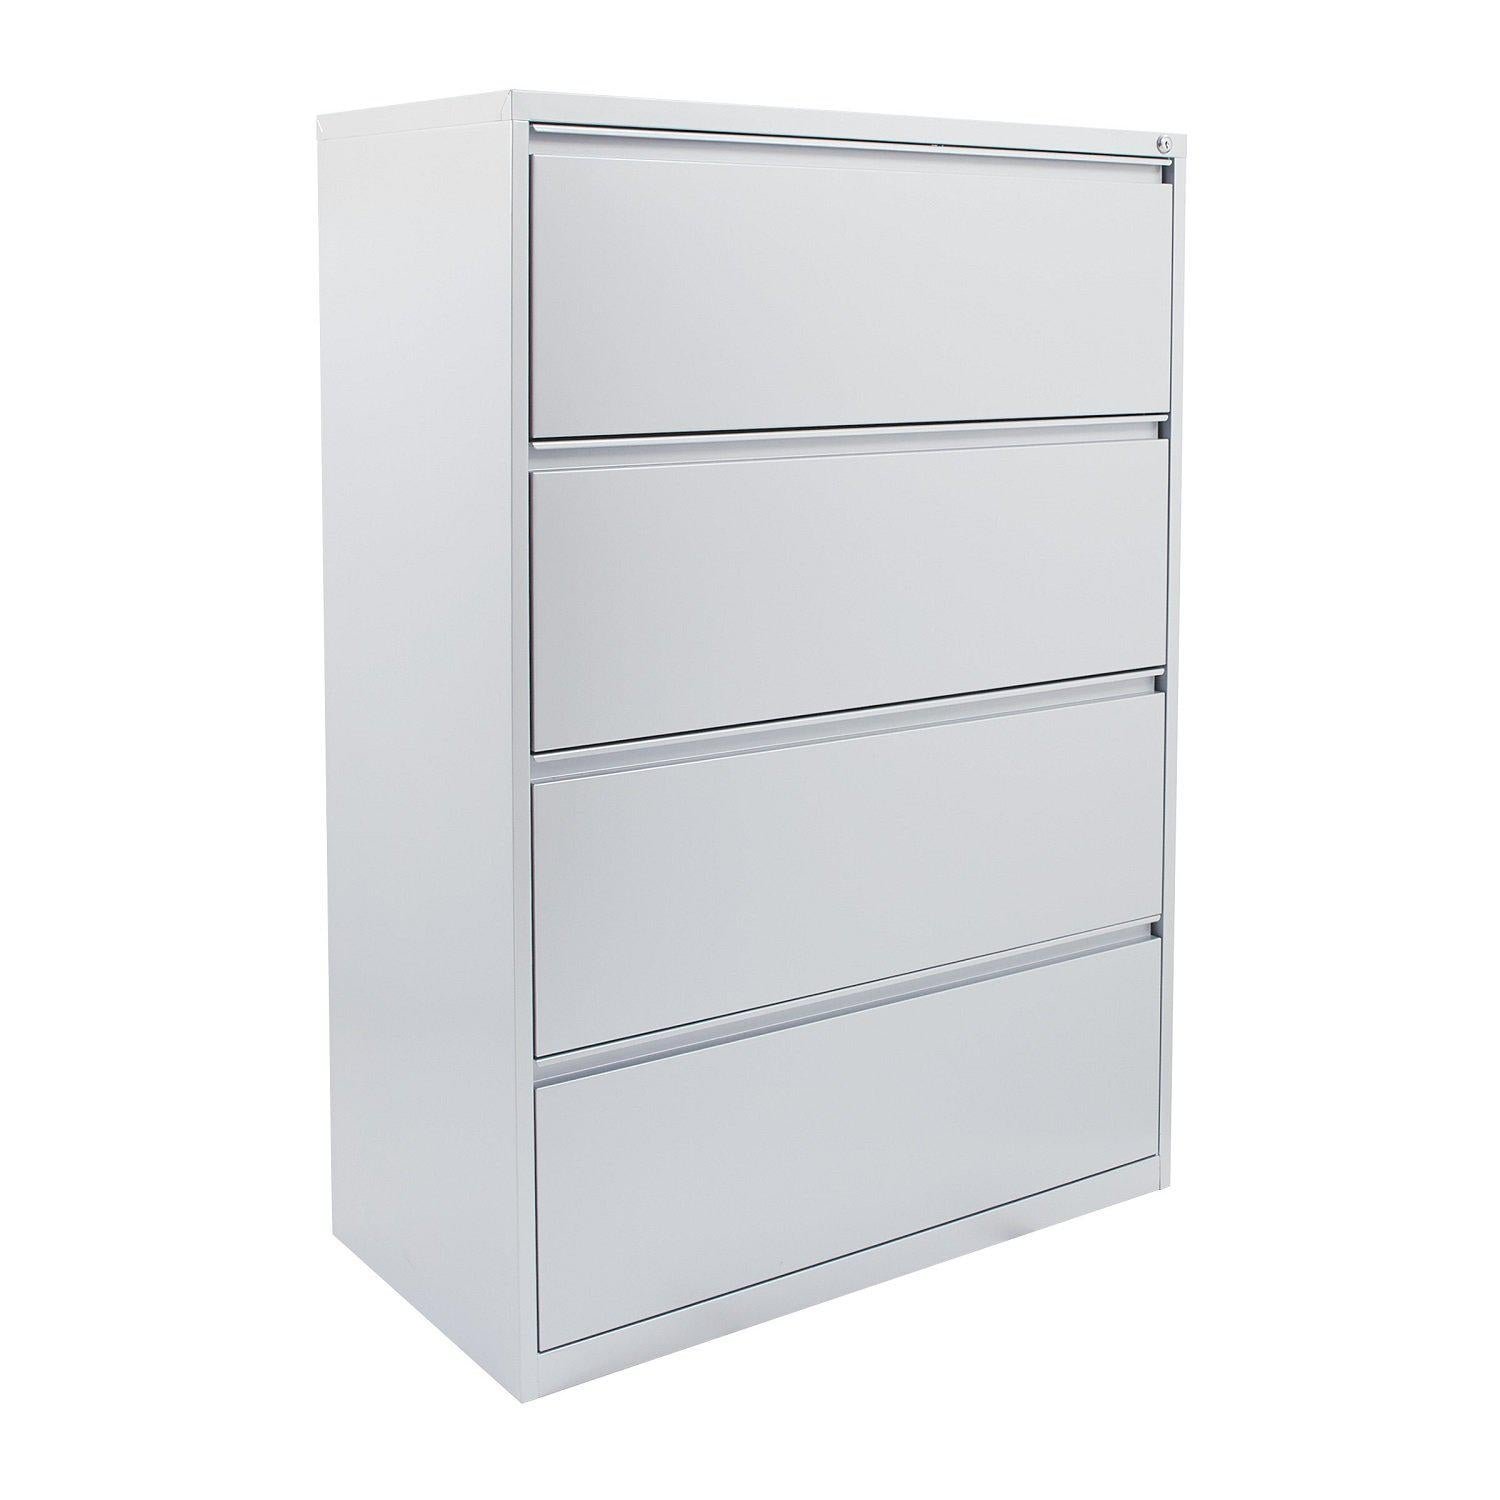 "Heavy-Duty Metal Lateral File, 36"" Wide, 4 Drawers"